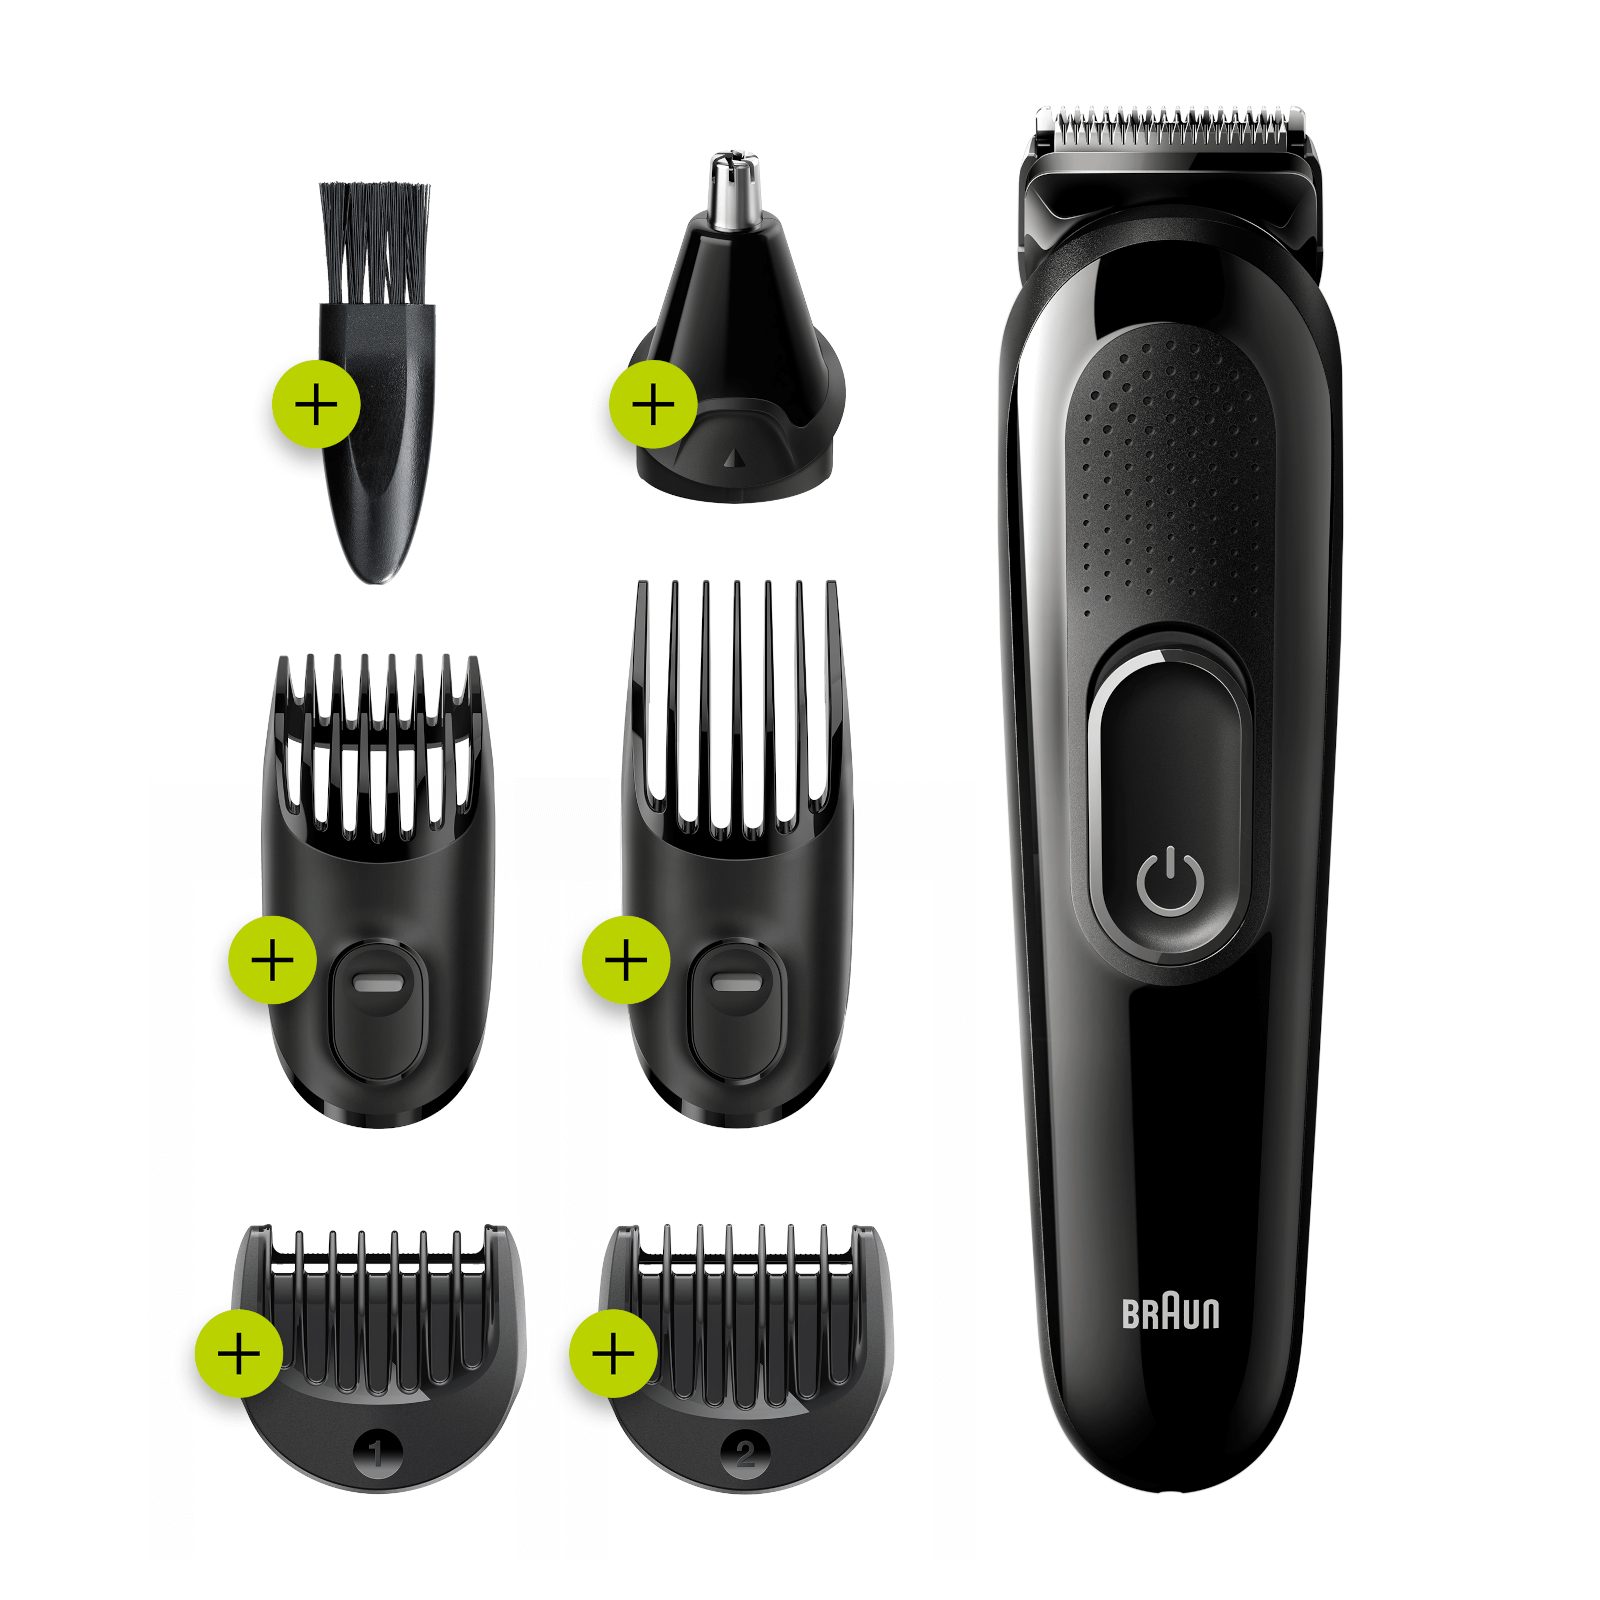 All-in-one Trimmer with 5 attachments incl. Ear/Nose trimmer - Black